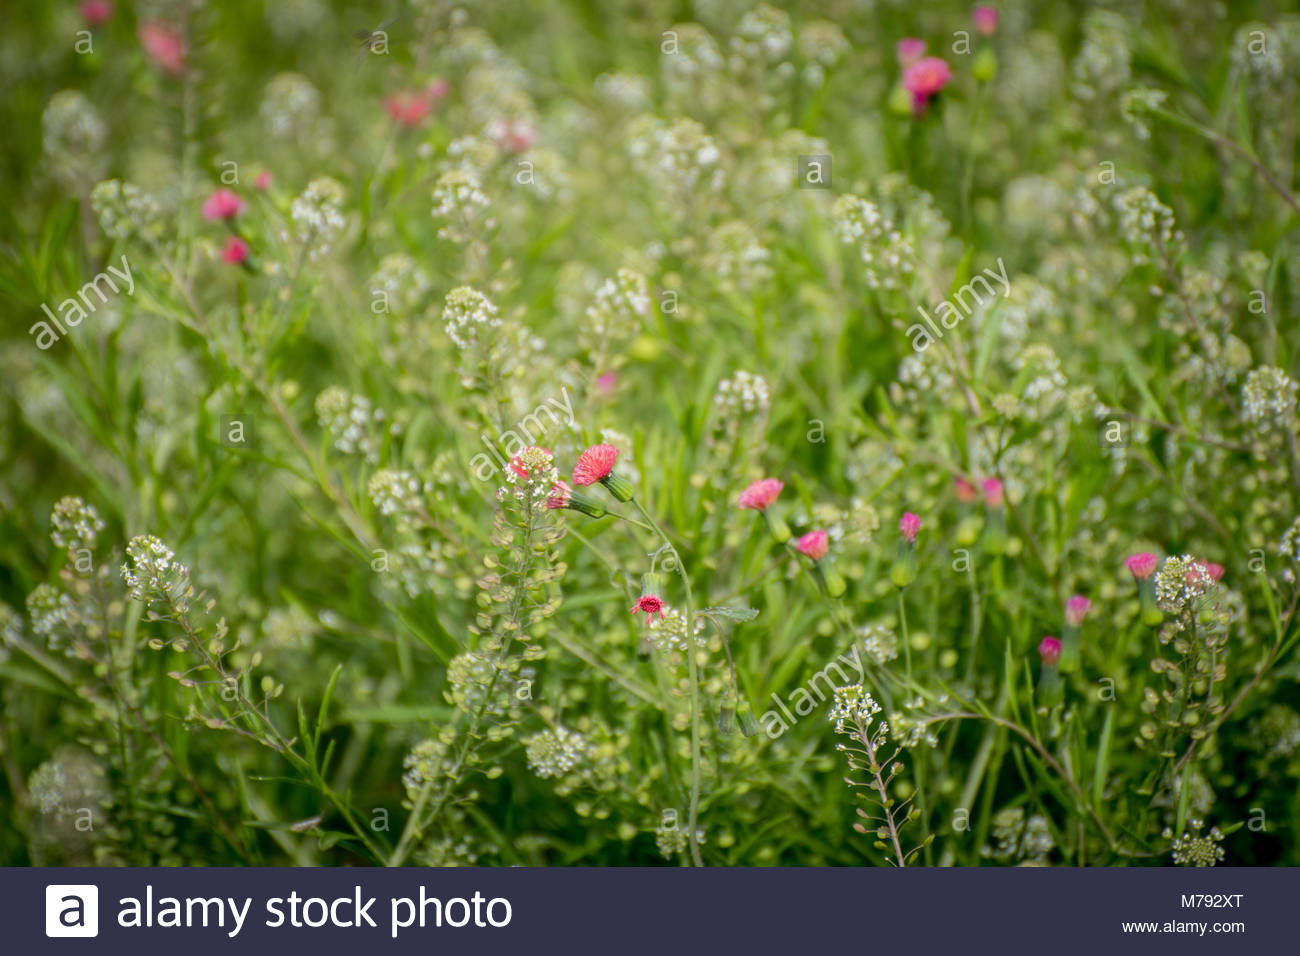 Tiny white flowers stock photos tiny white flowers stock images tiny pink flowers bloom in large field with endless blades of green grass and tiny white mightylinksfo